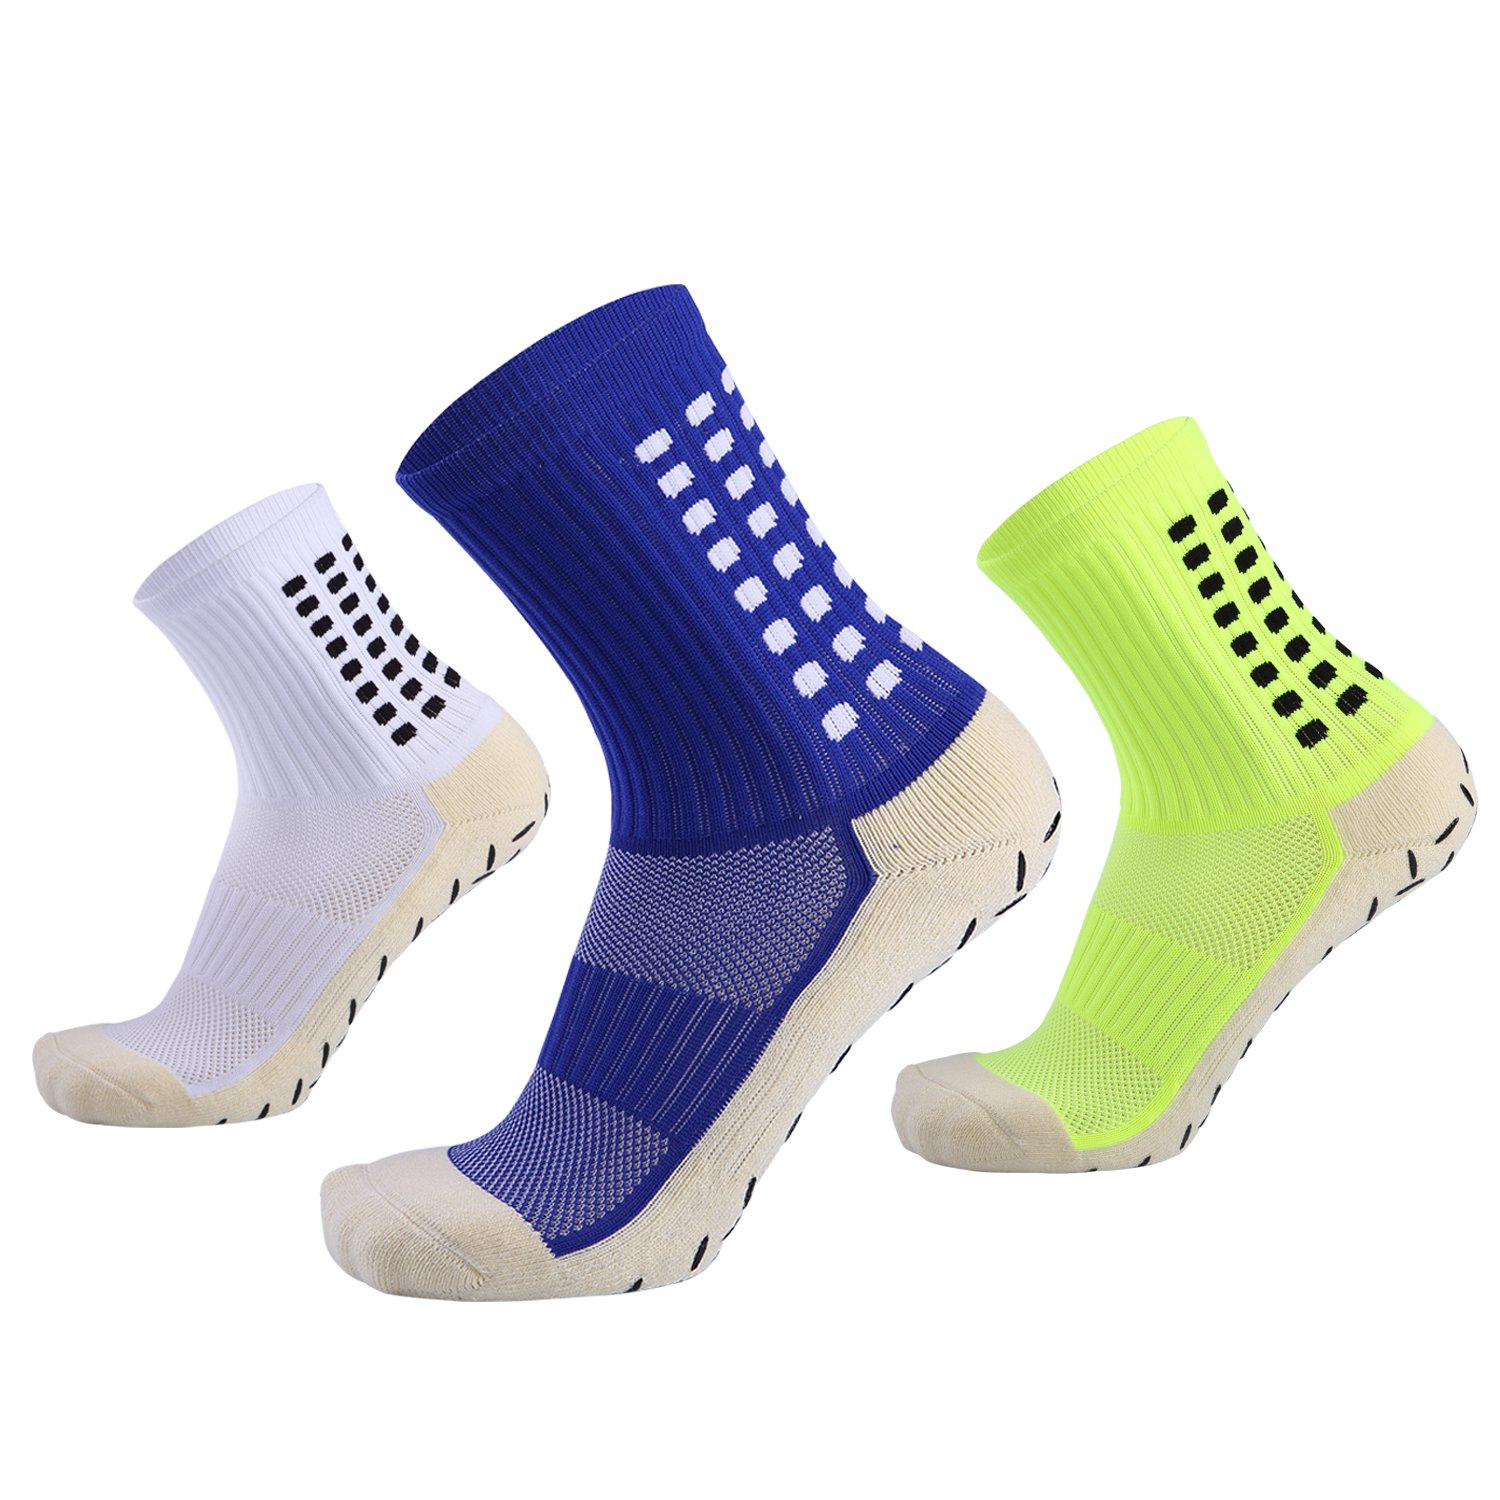 Best For Football Basketball Running Tennis Training Travel,Anti Slip Socks,Non Skid Slipper Hospital Sock with grip for Men Women Boy&Girl(3 Pairs)